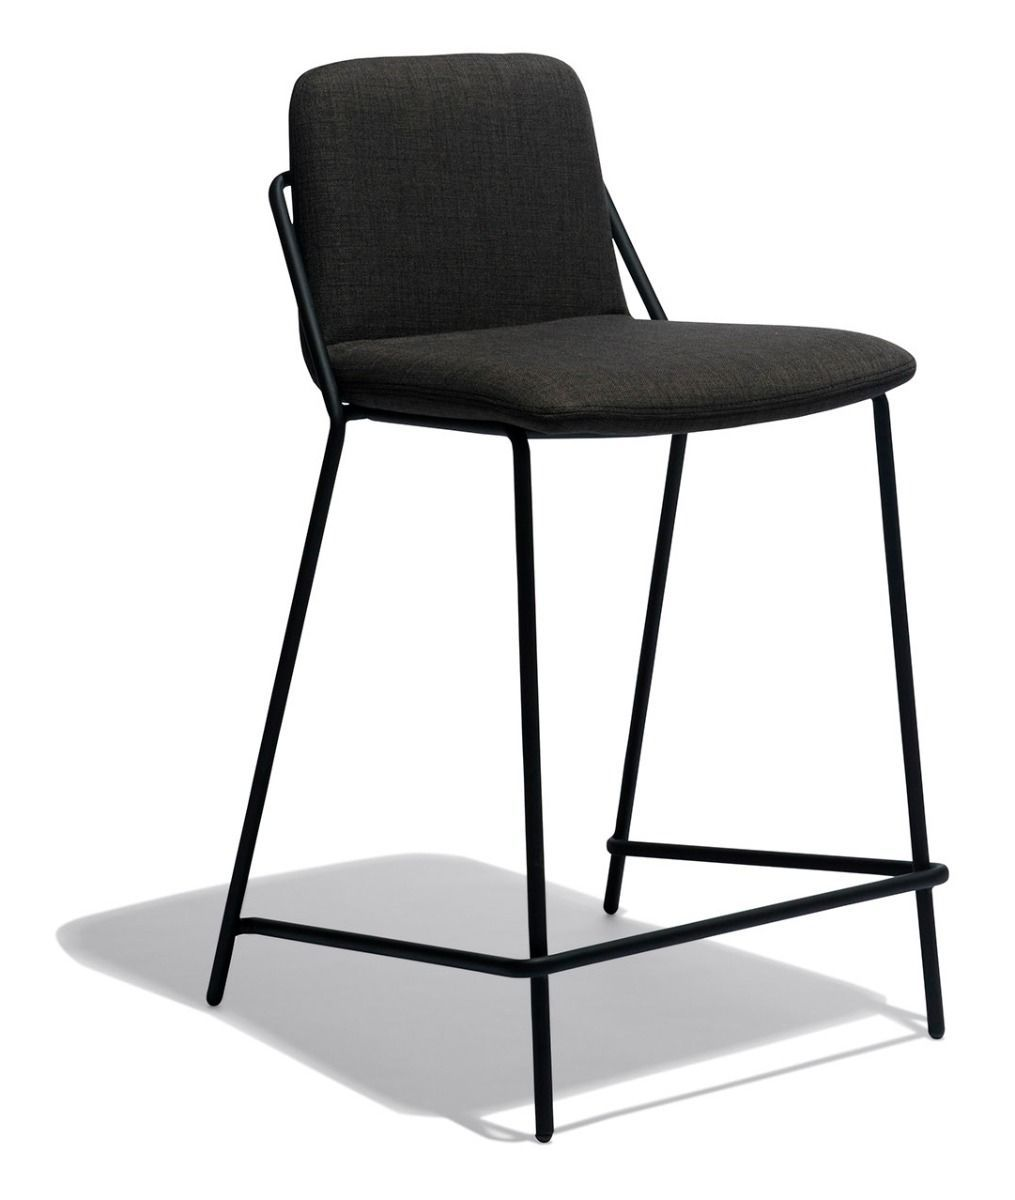 Sling Counter Stool Upholstered In 2020 Counter Stools Upholstered Stool Stool